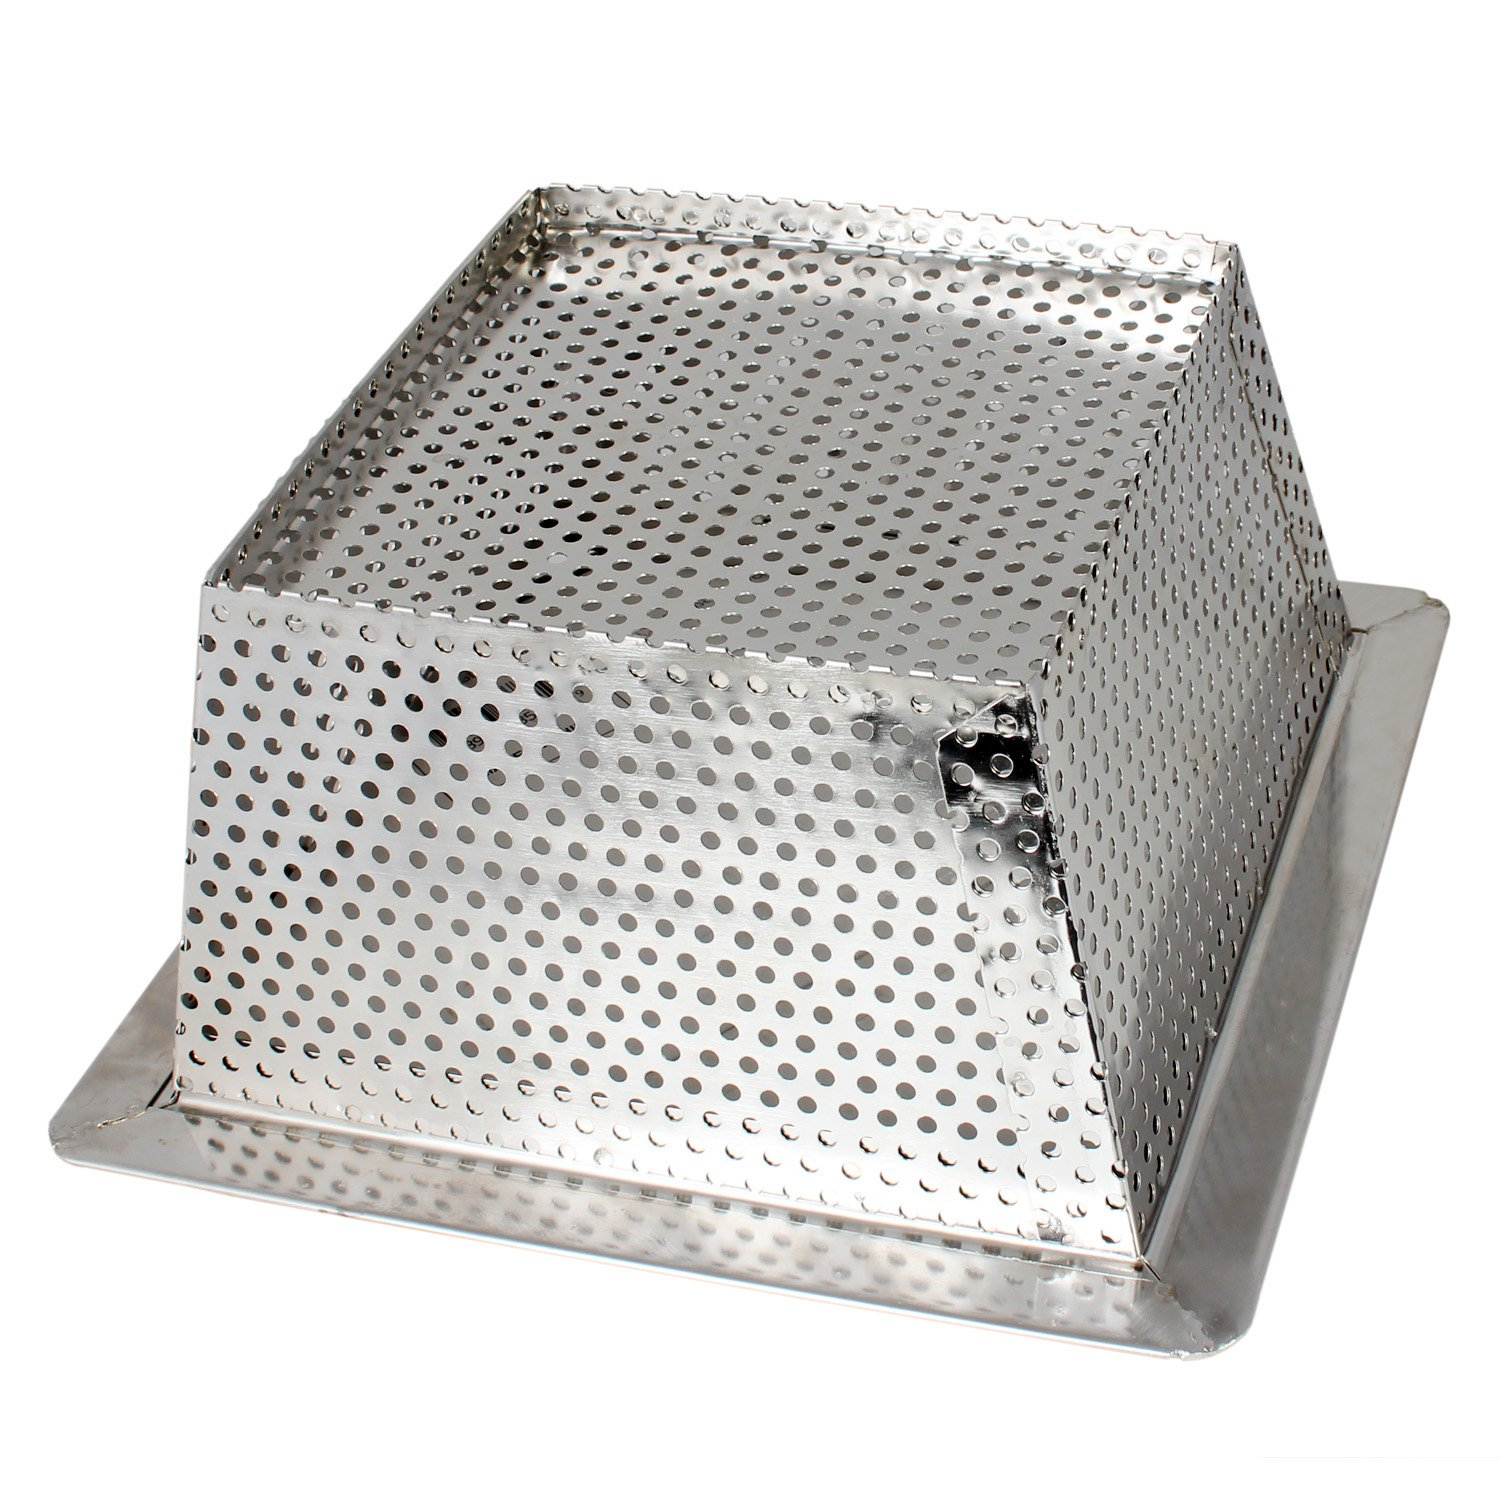 Excellante Commercial Floor Drain Strainer 304 Stainless